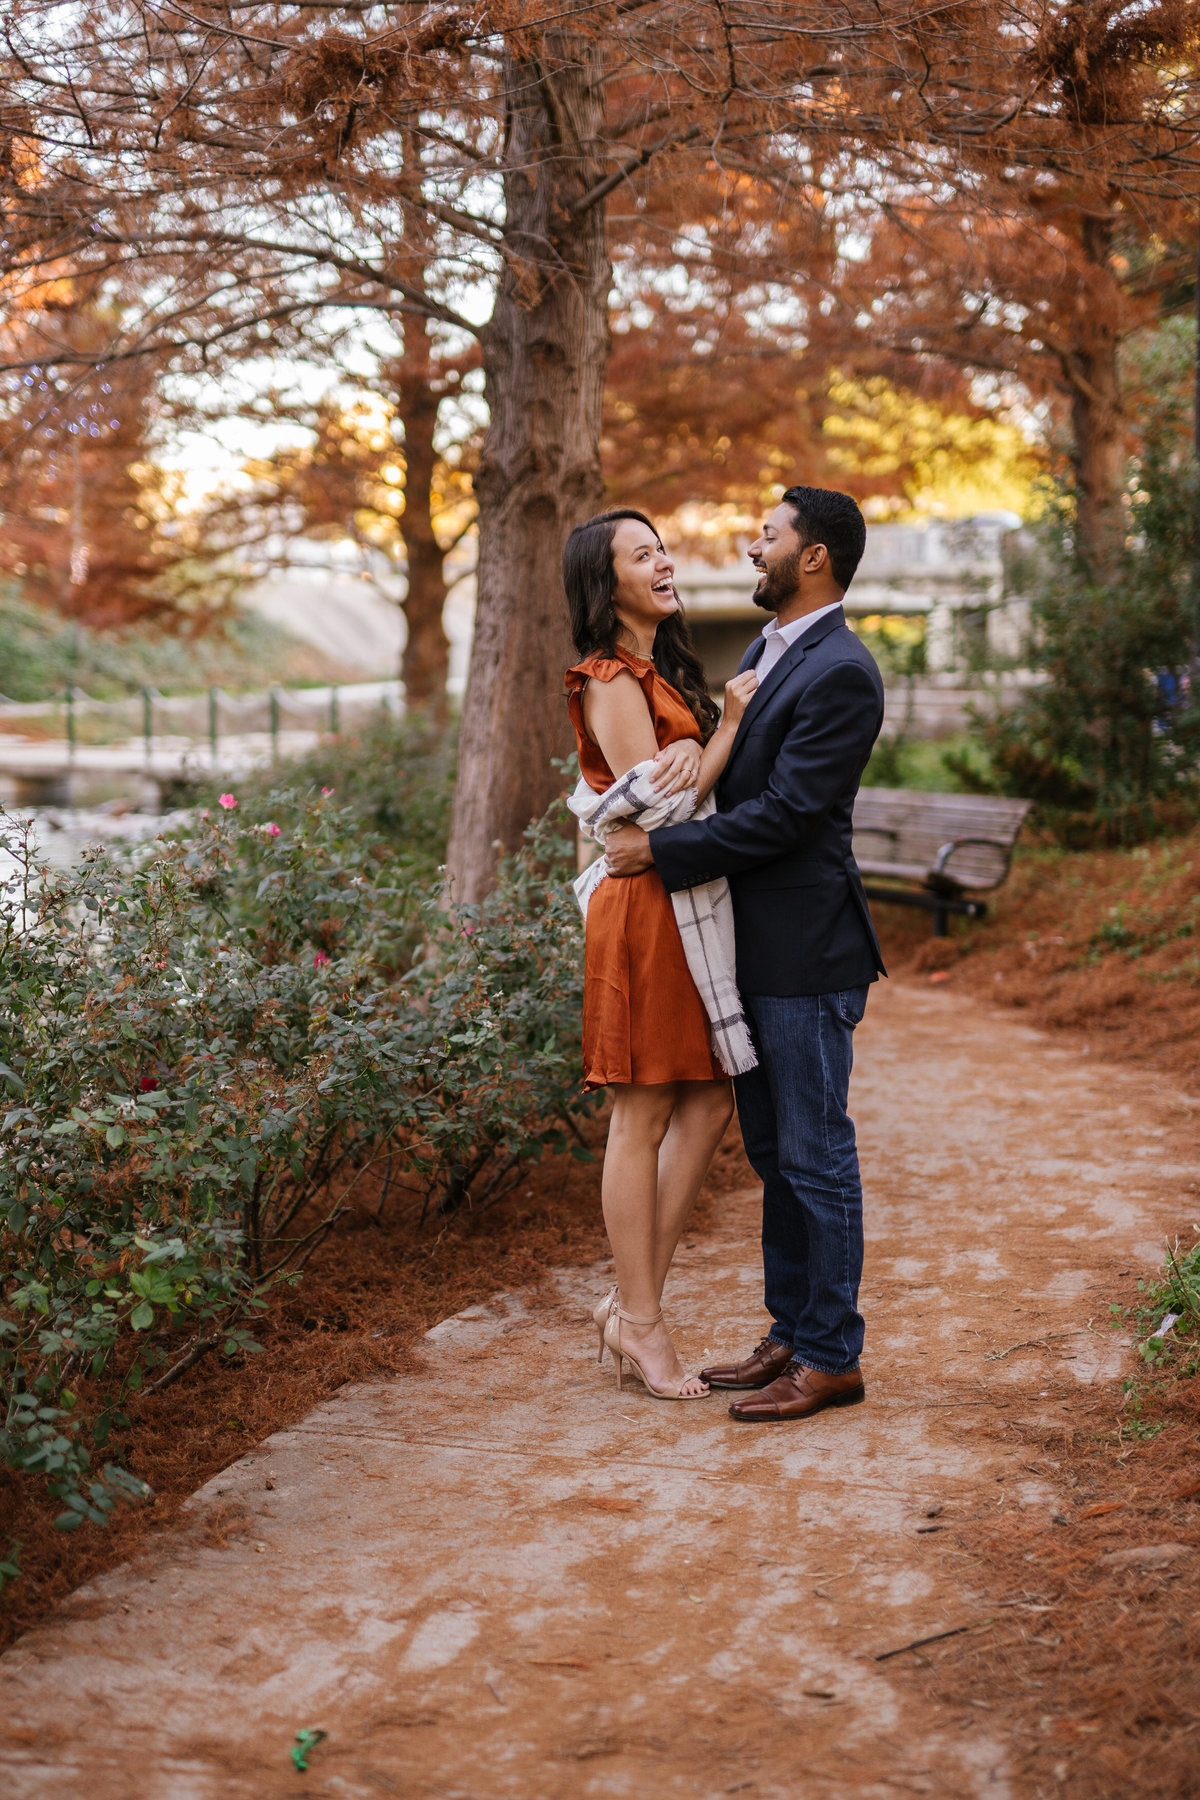 Beautiful fall engagement session for couple with leaves on the ground and standing next to a river.